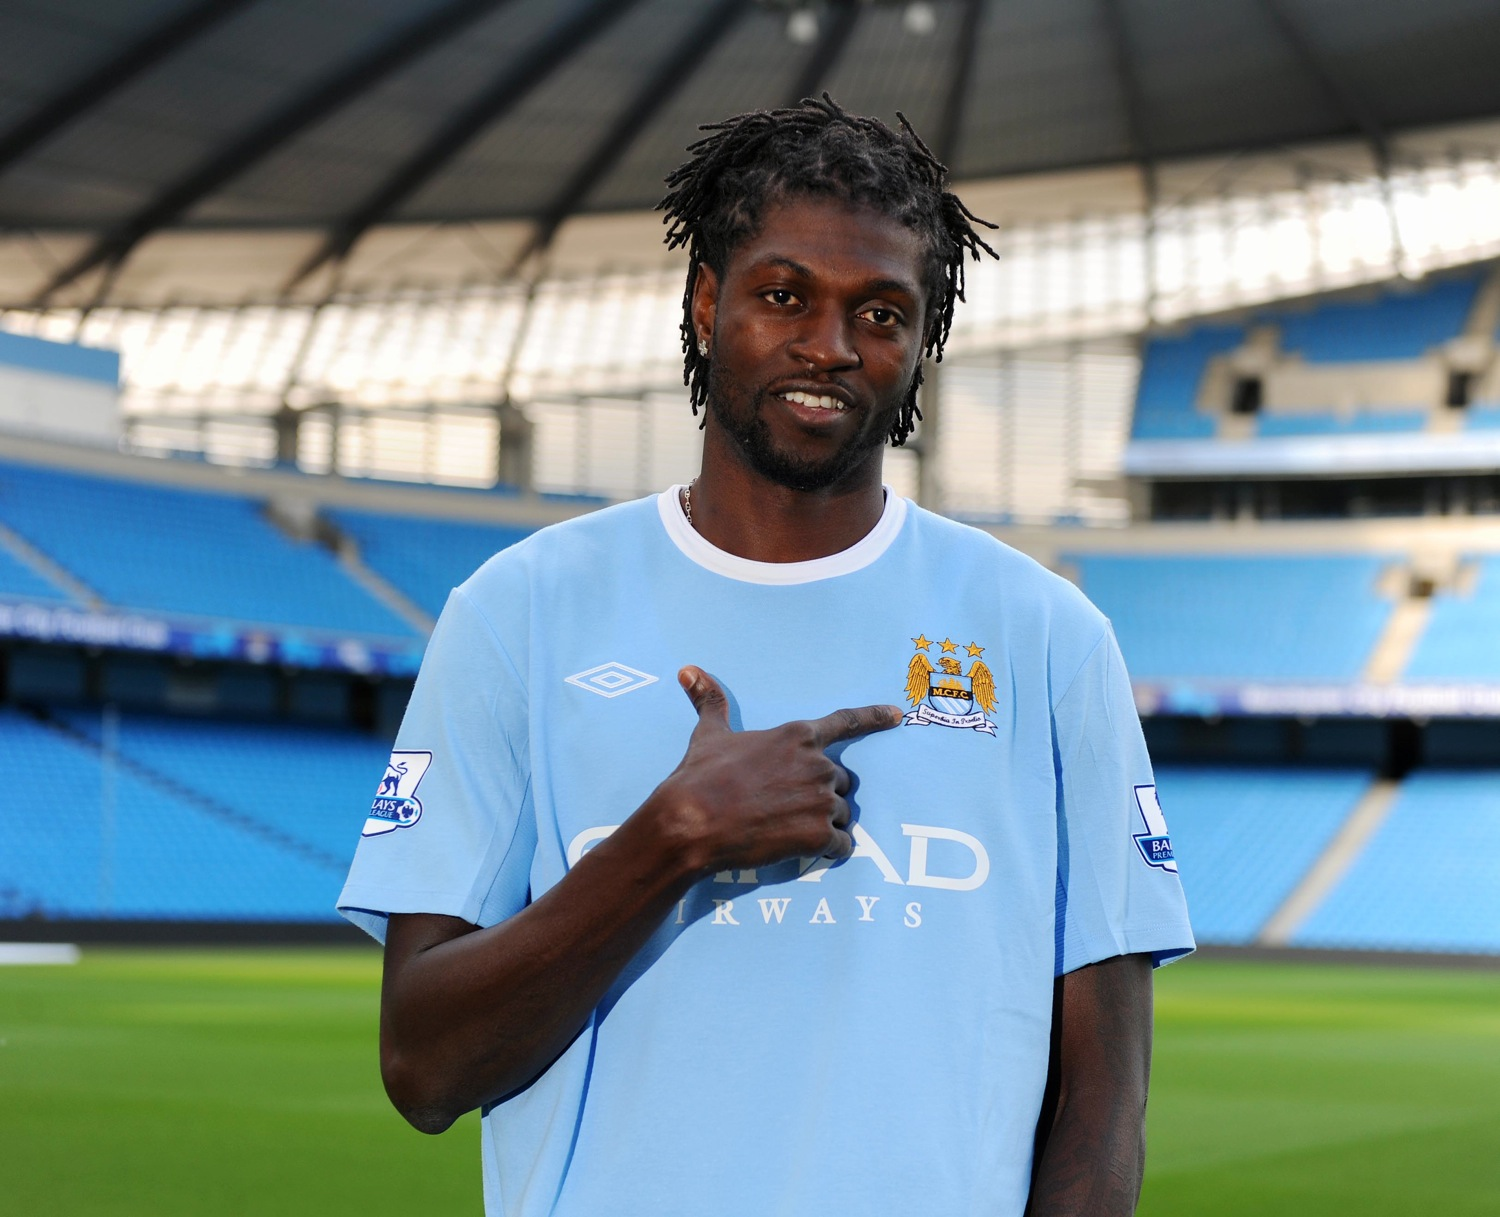 http://i2.wp.com/twoliverpoolfans.files.wordpress.com/2011/04/adebayor.jpg